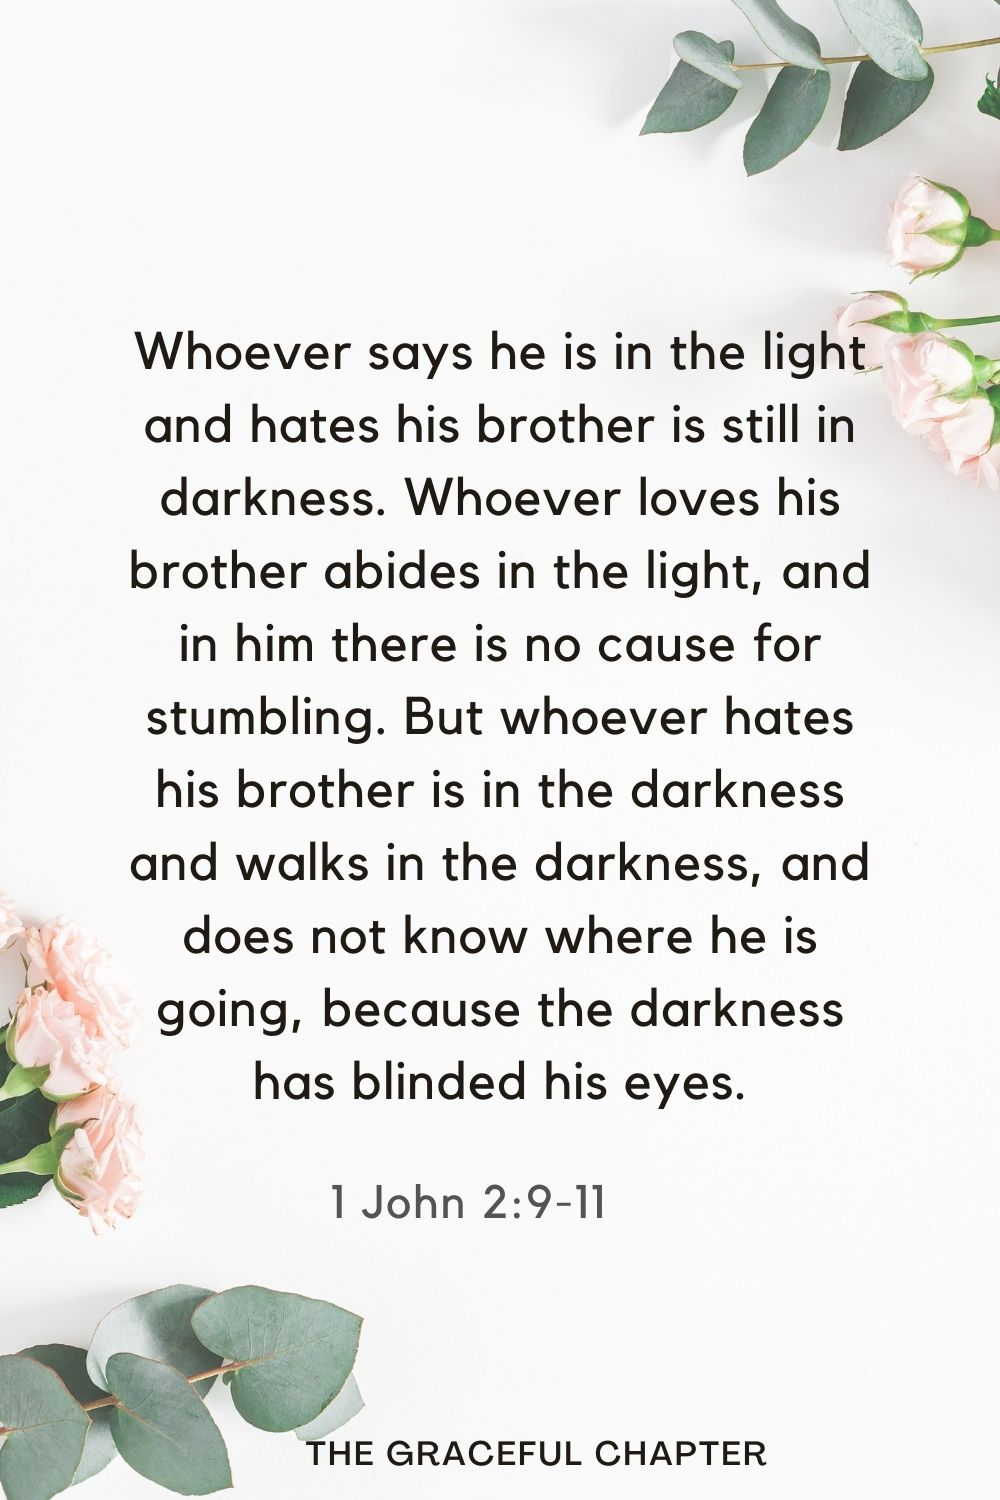 Whoever says he is in the light and hates his brother is still in darkness. Whoever loves his brother abides in the light, and in him there is no cause for stumbling. But whoever hates his brother is in the darkness and walks in the darkness, and does not know where he is going, because the darkness has blinded his eyes. 1 John 2:9-11